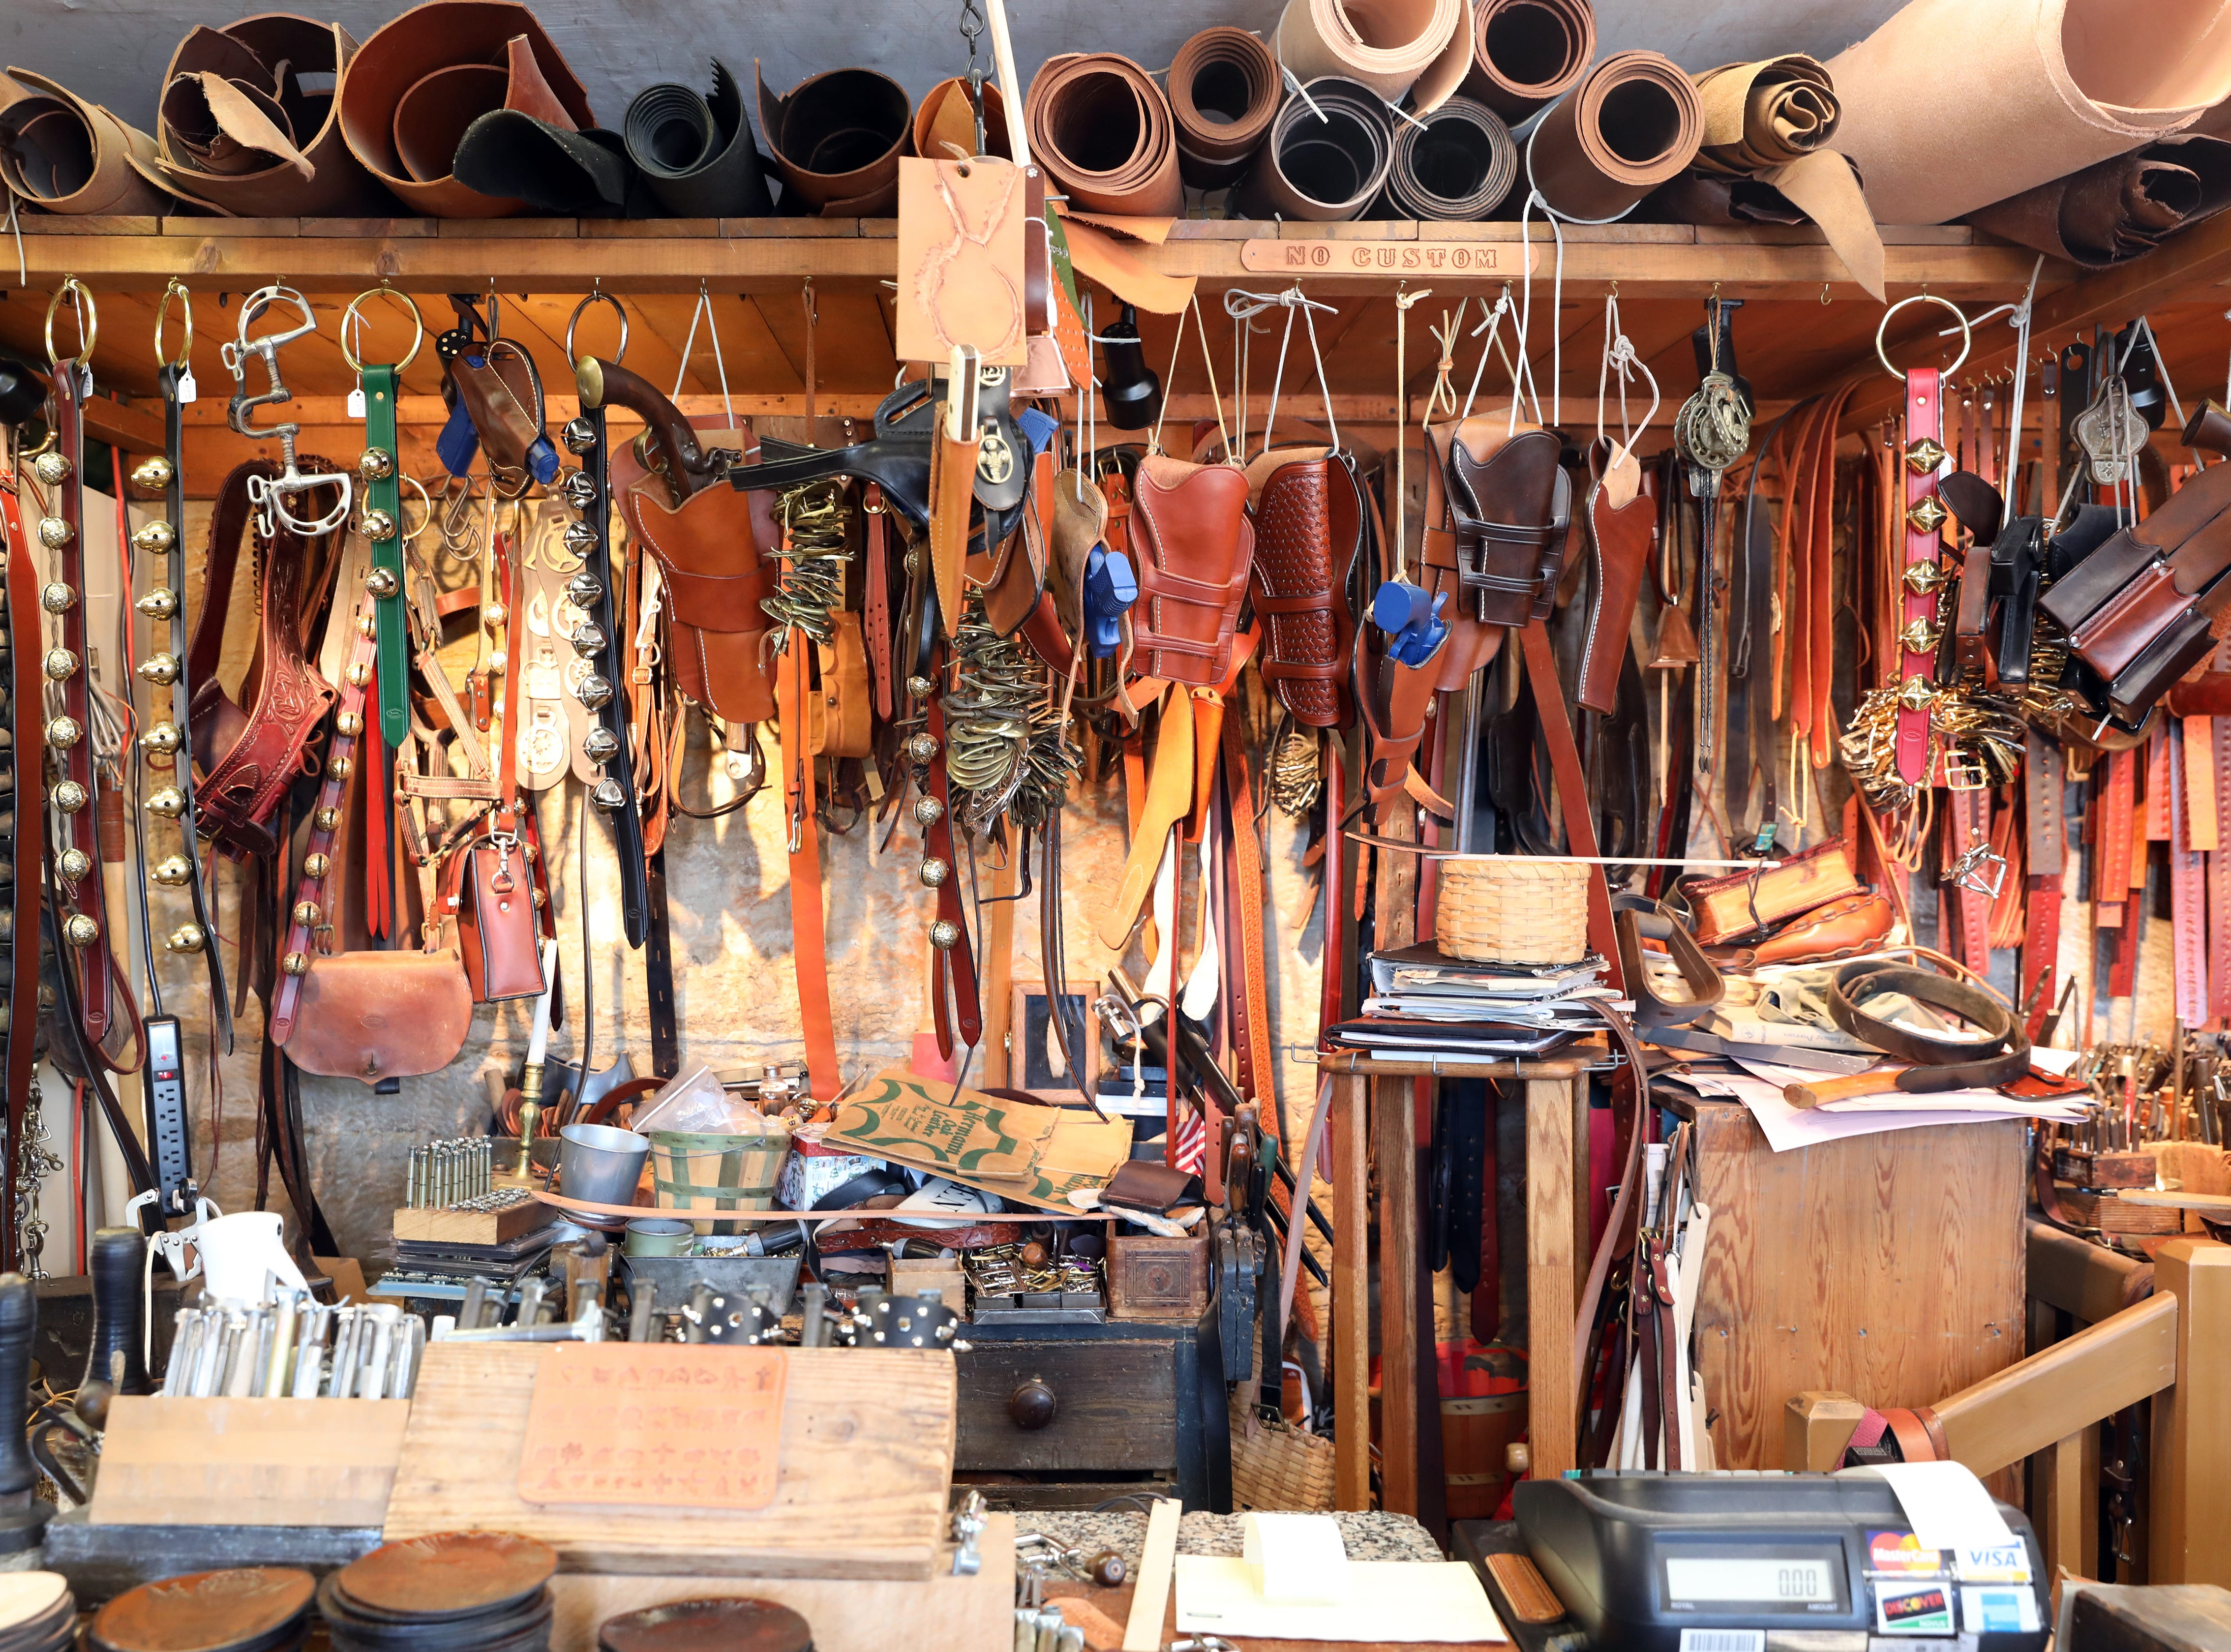 Rolls of leather and finished products at River Ridge Leather Company in Roscoe Village.